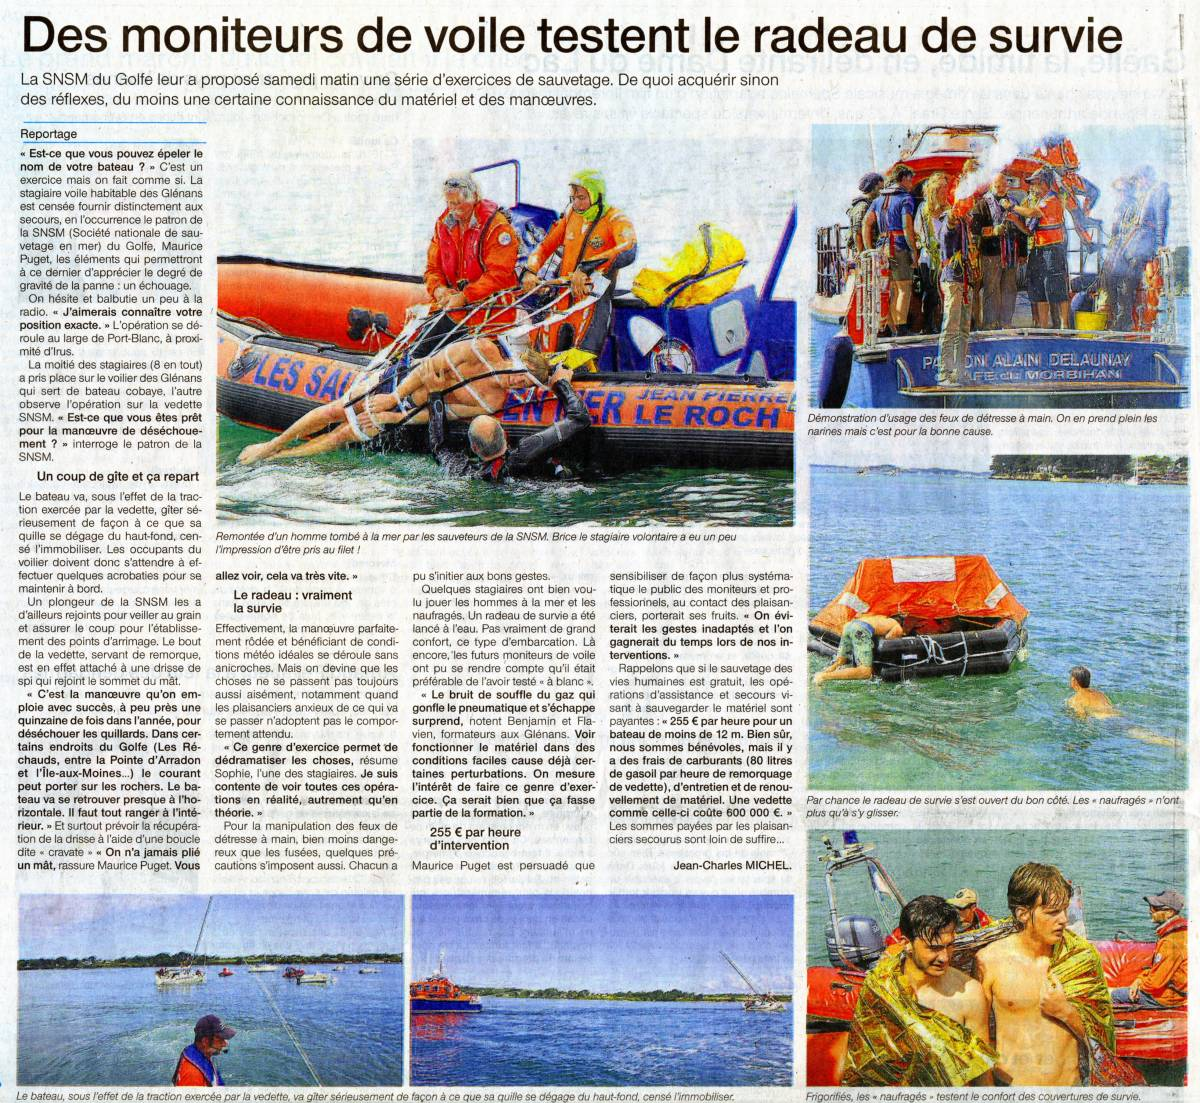 2013-08-12_ouest_france.jpg